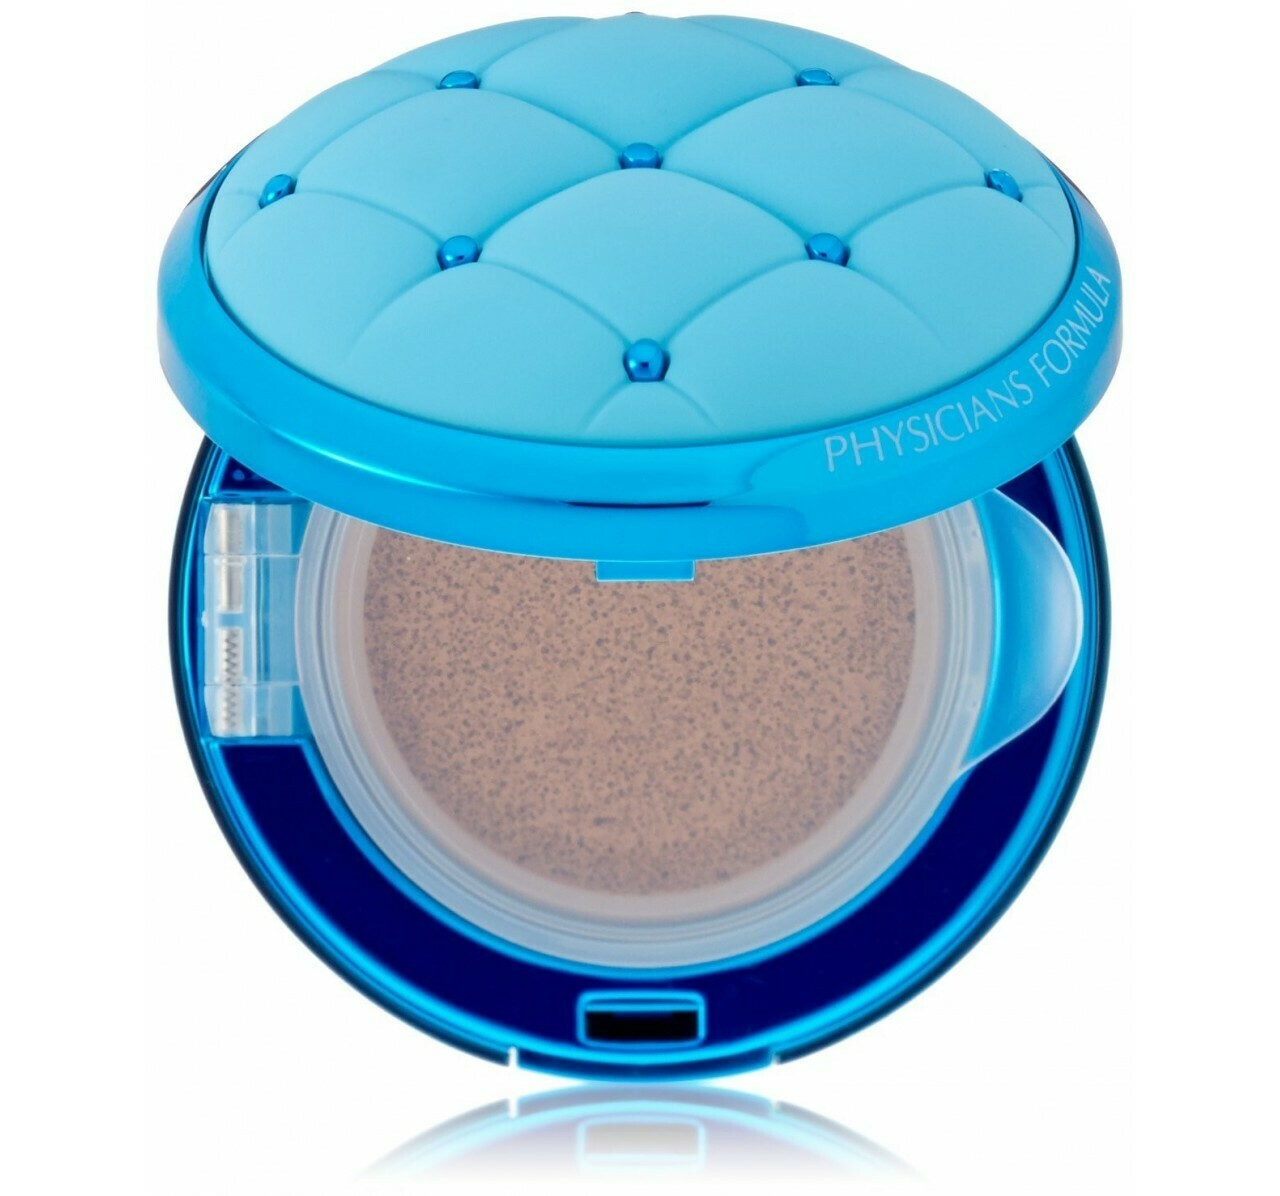 Physicians Formula 170077 Mineral Wear All in one ABC Cushion Foundation